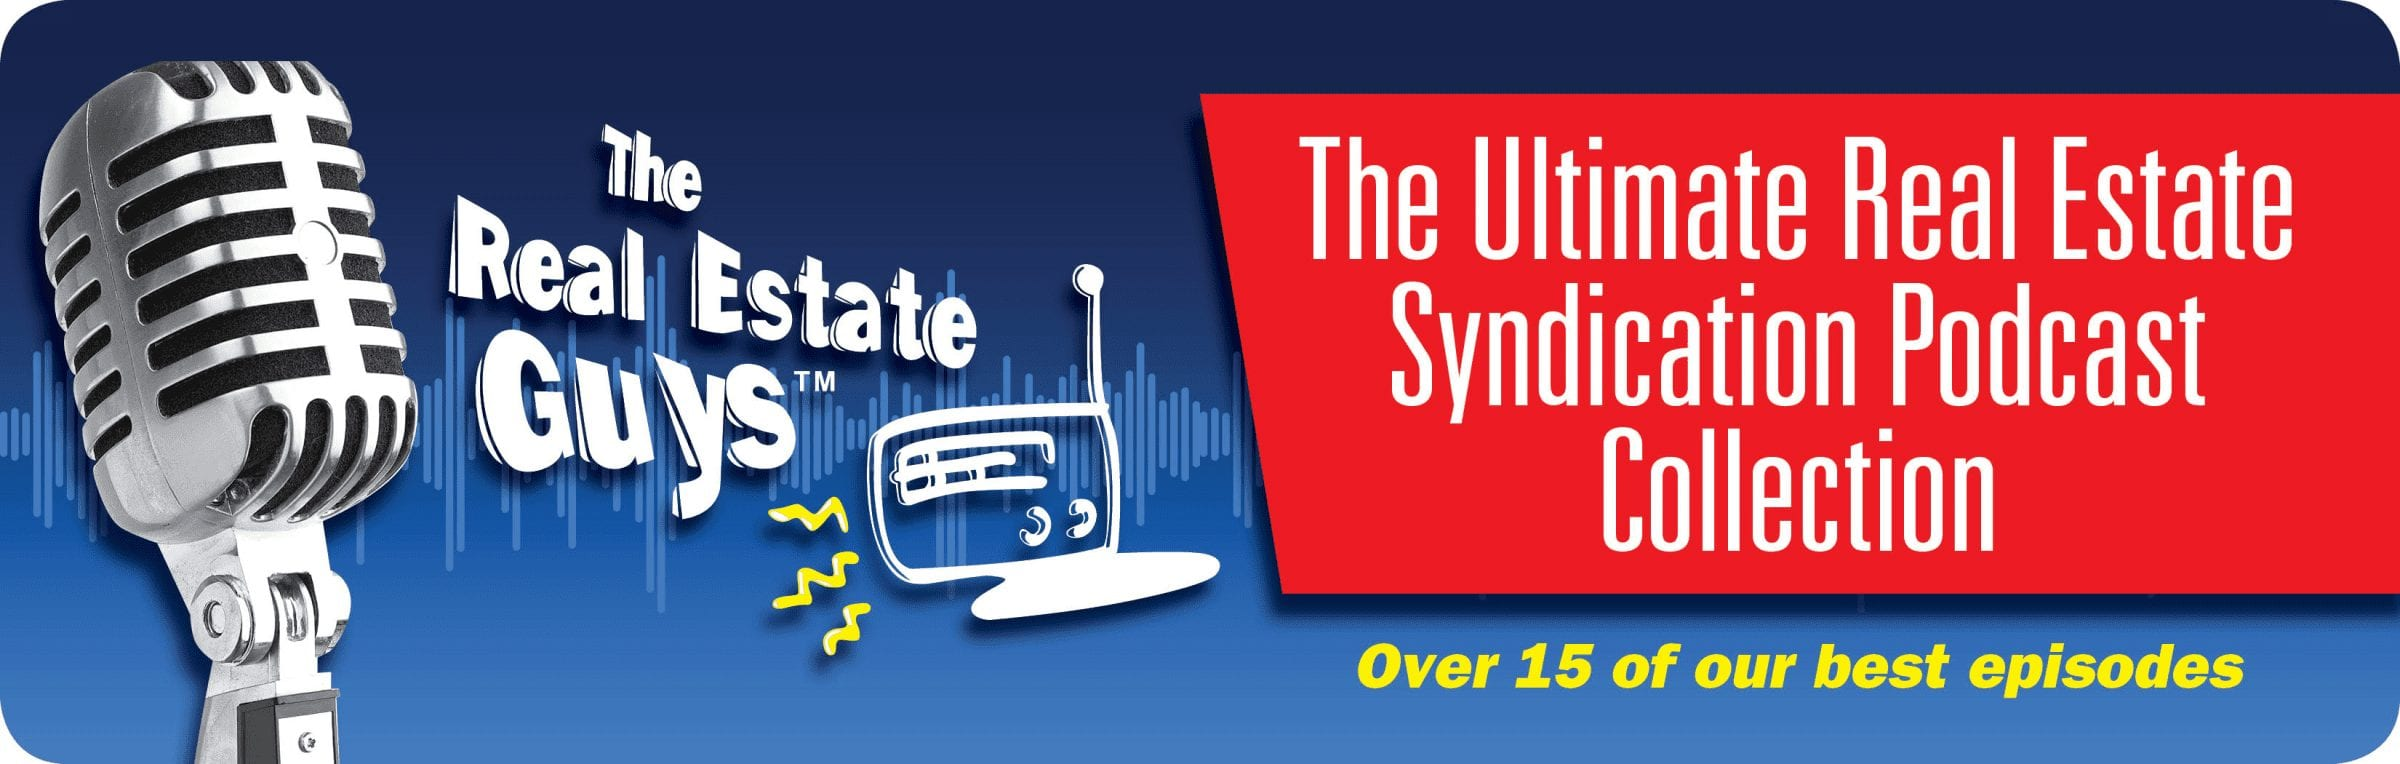 ultimate syndication podcast collection